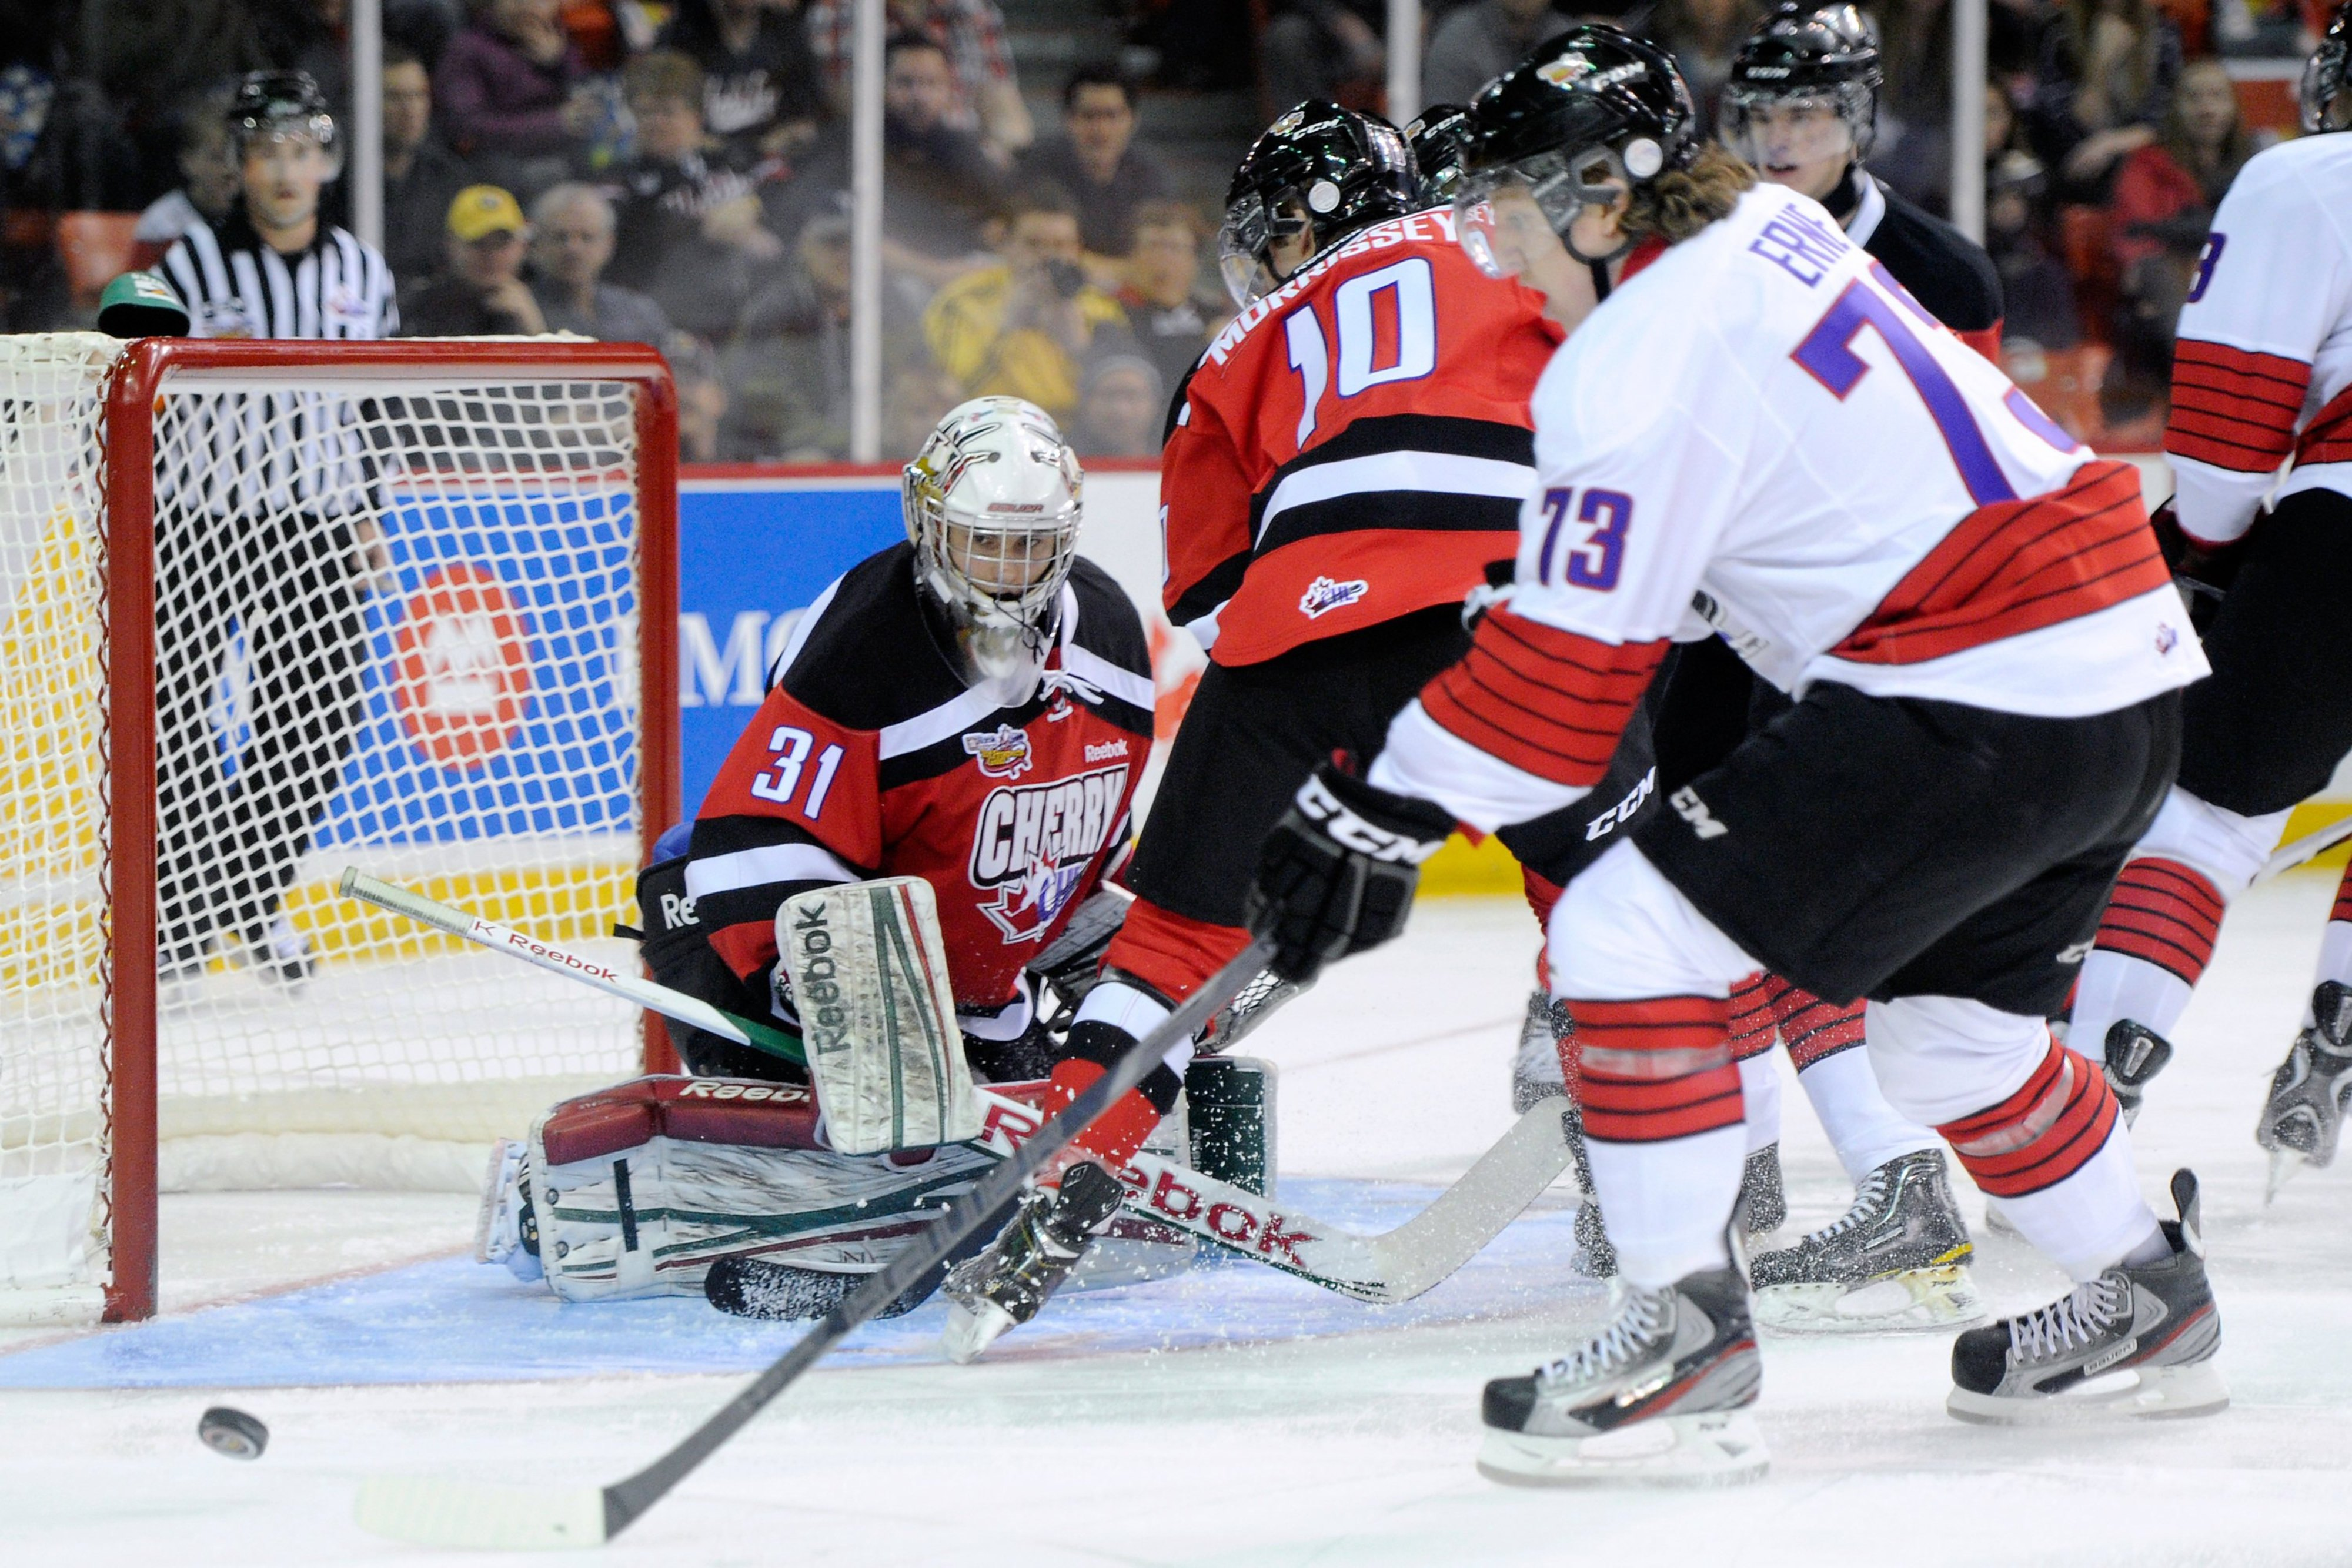 Adam Erne gets behind Josh Morrissey for a scoring chance on Zach Fucale at the CHL Top Prospects Game.  All three players should be on the Canadiens' radar for their first round draft pick in 2013.